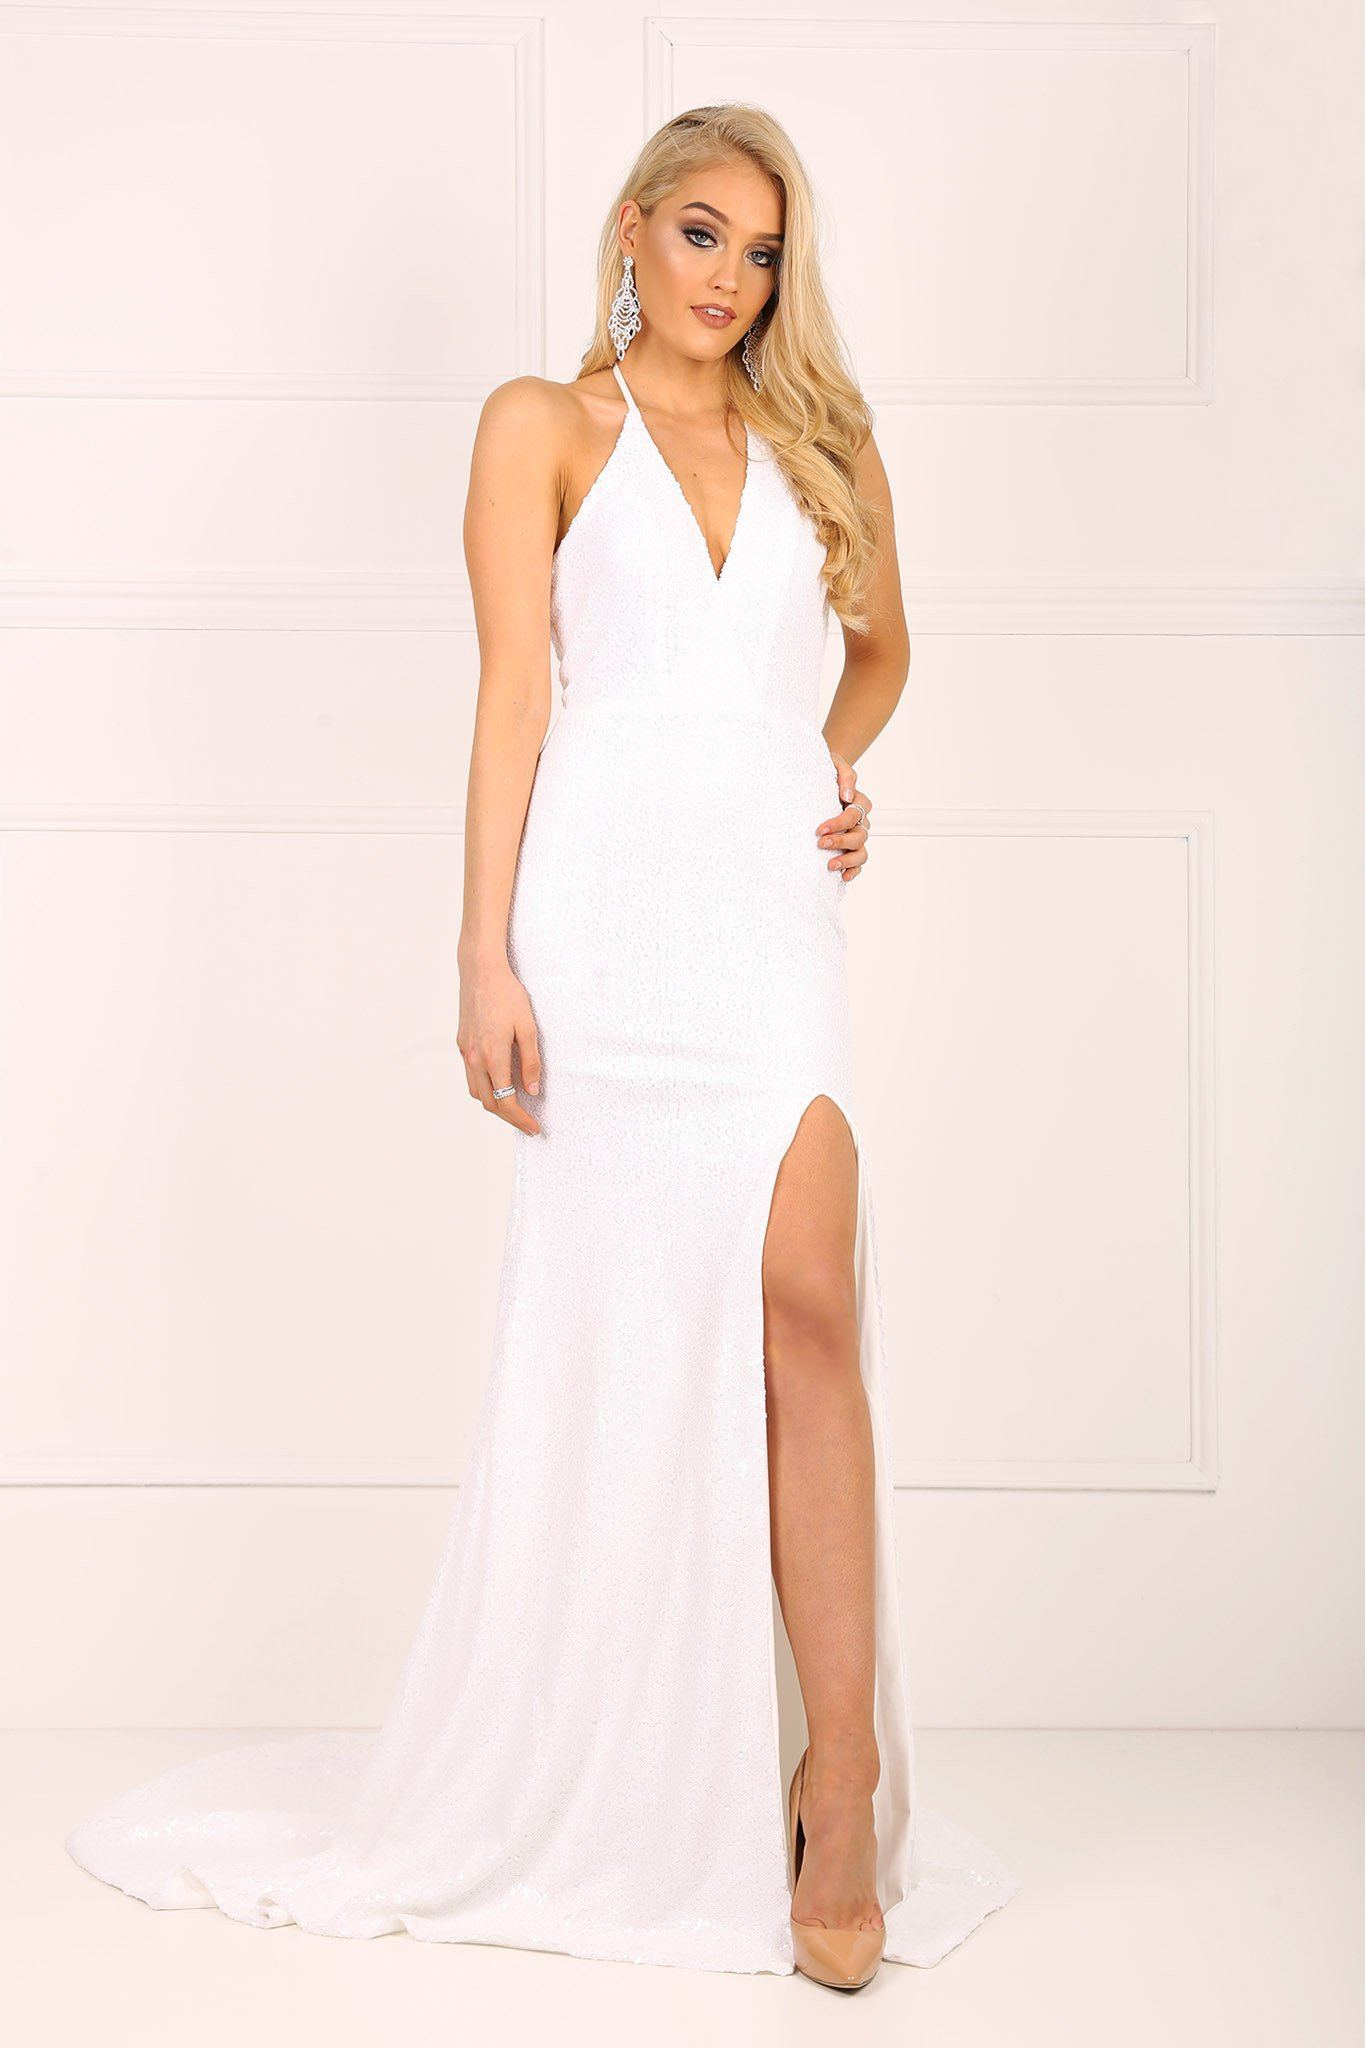 White sleeveless sequin long floor length gown with front slit and thin halter neck tie up strings and low back design